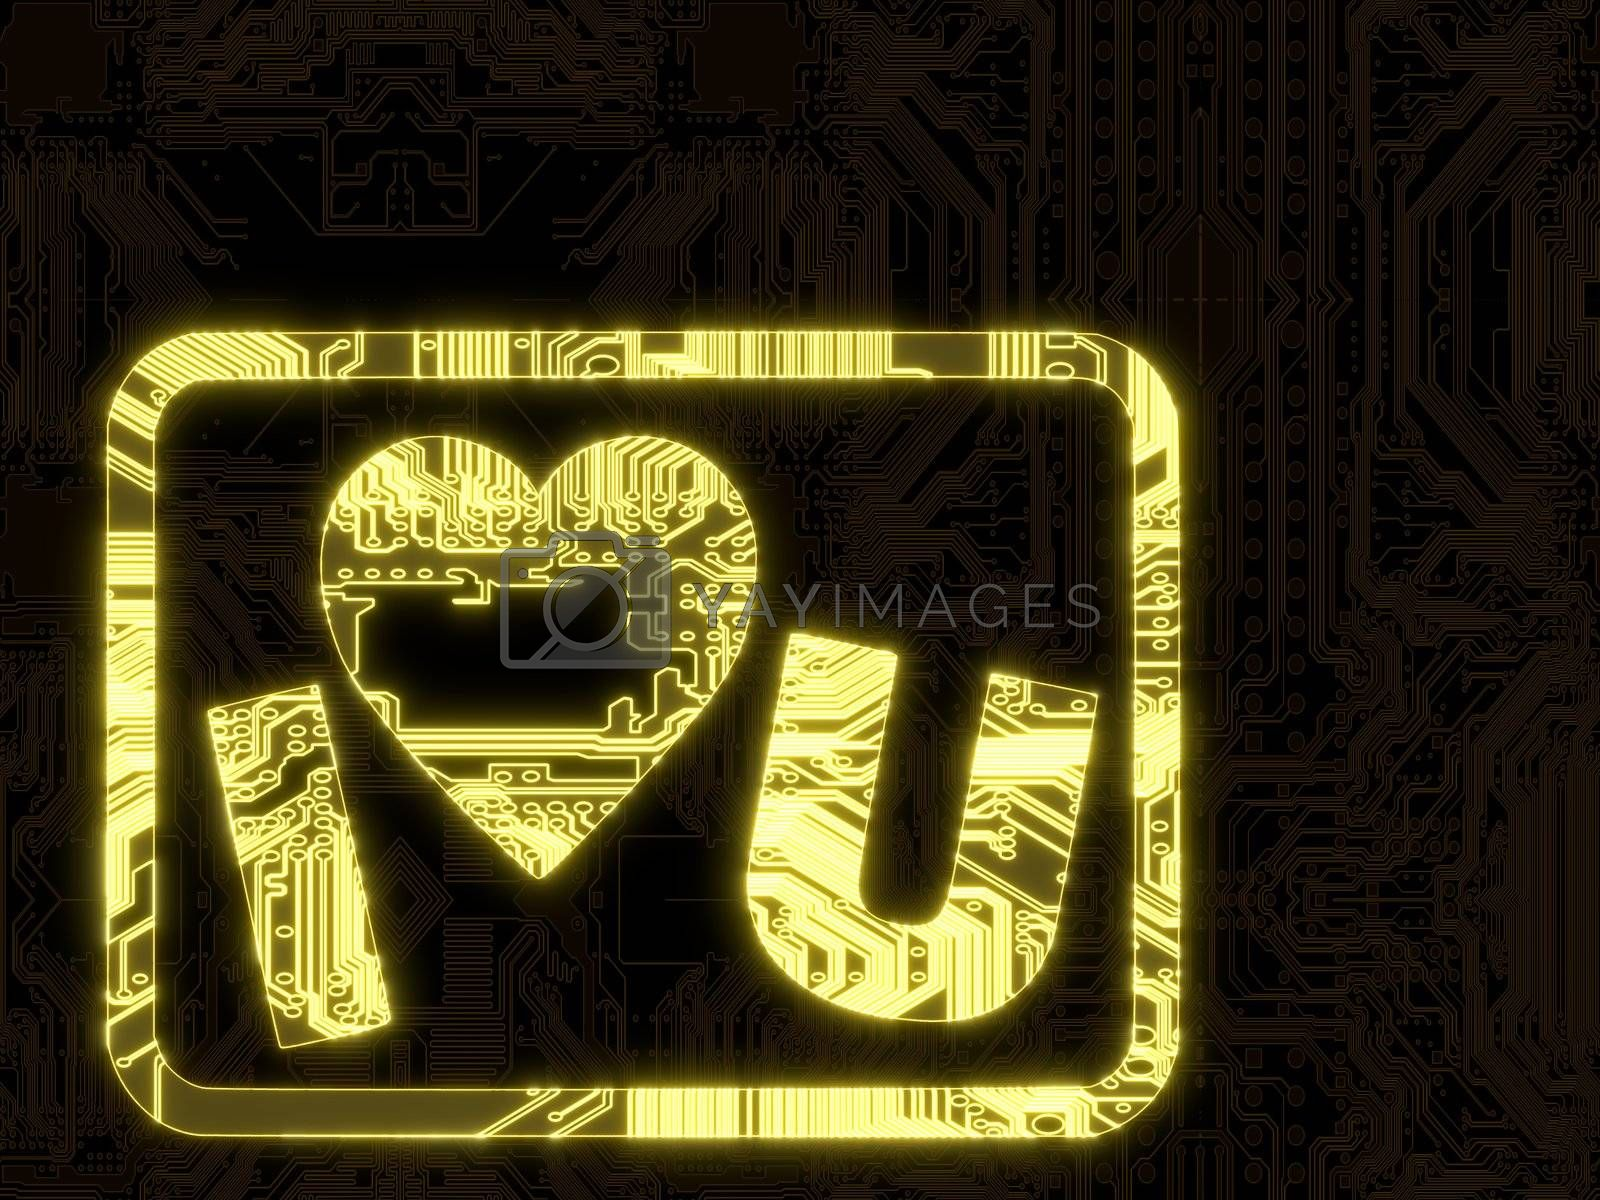 3D Graphic flare with I love you symbol on a computer chip